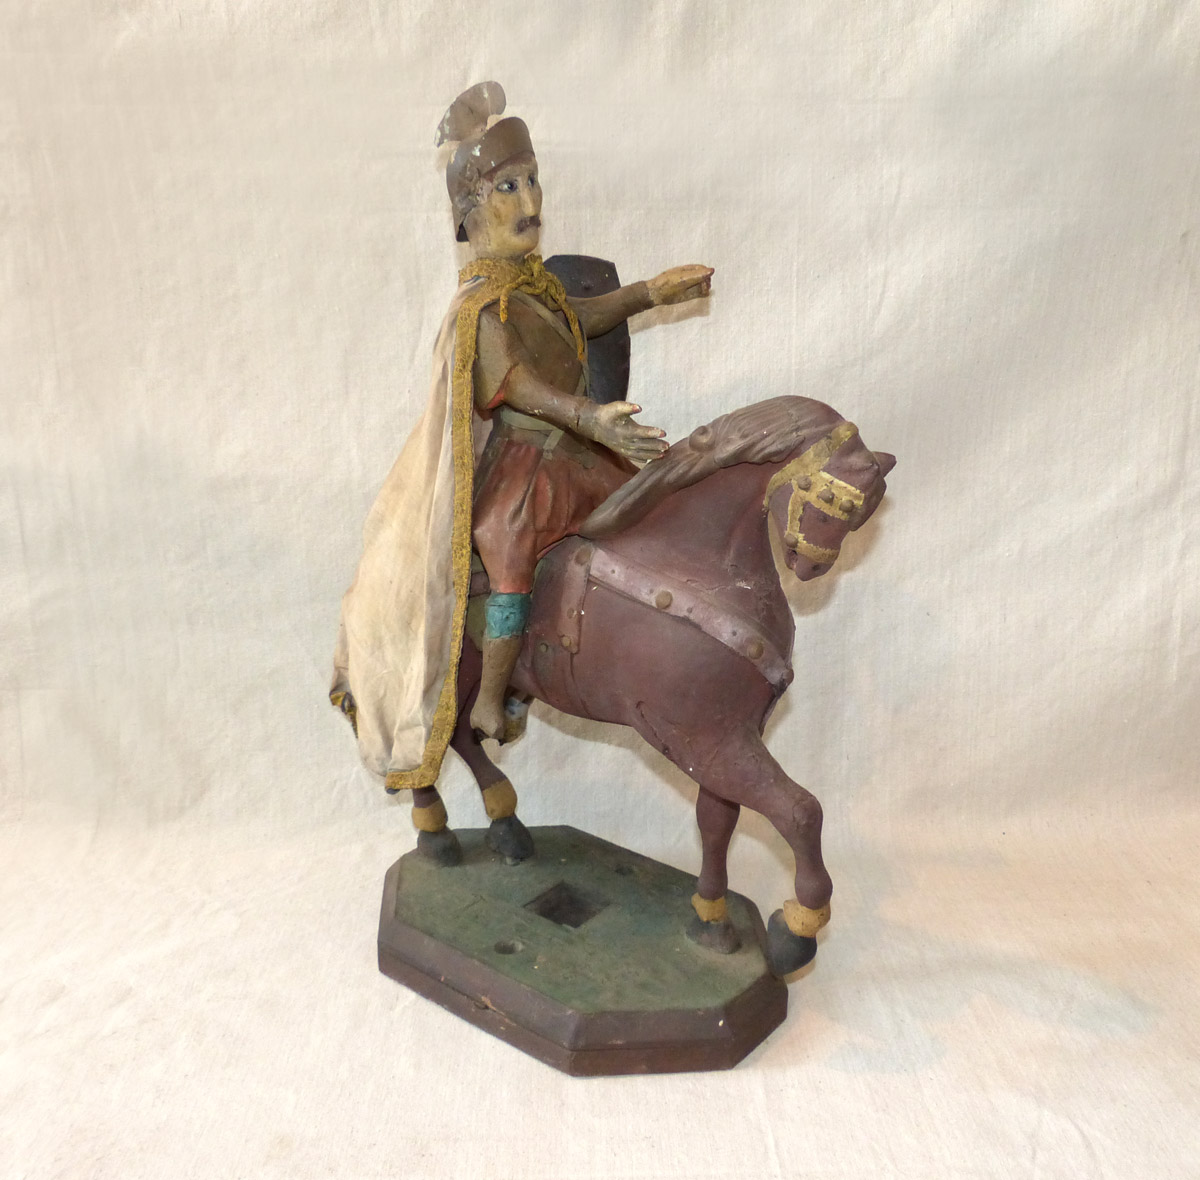 Antique Italian Soldier on Horse Statue